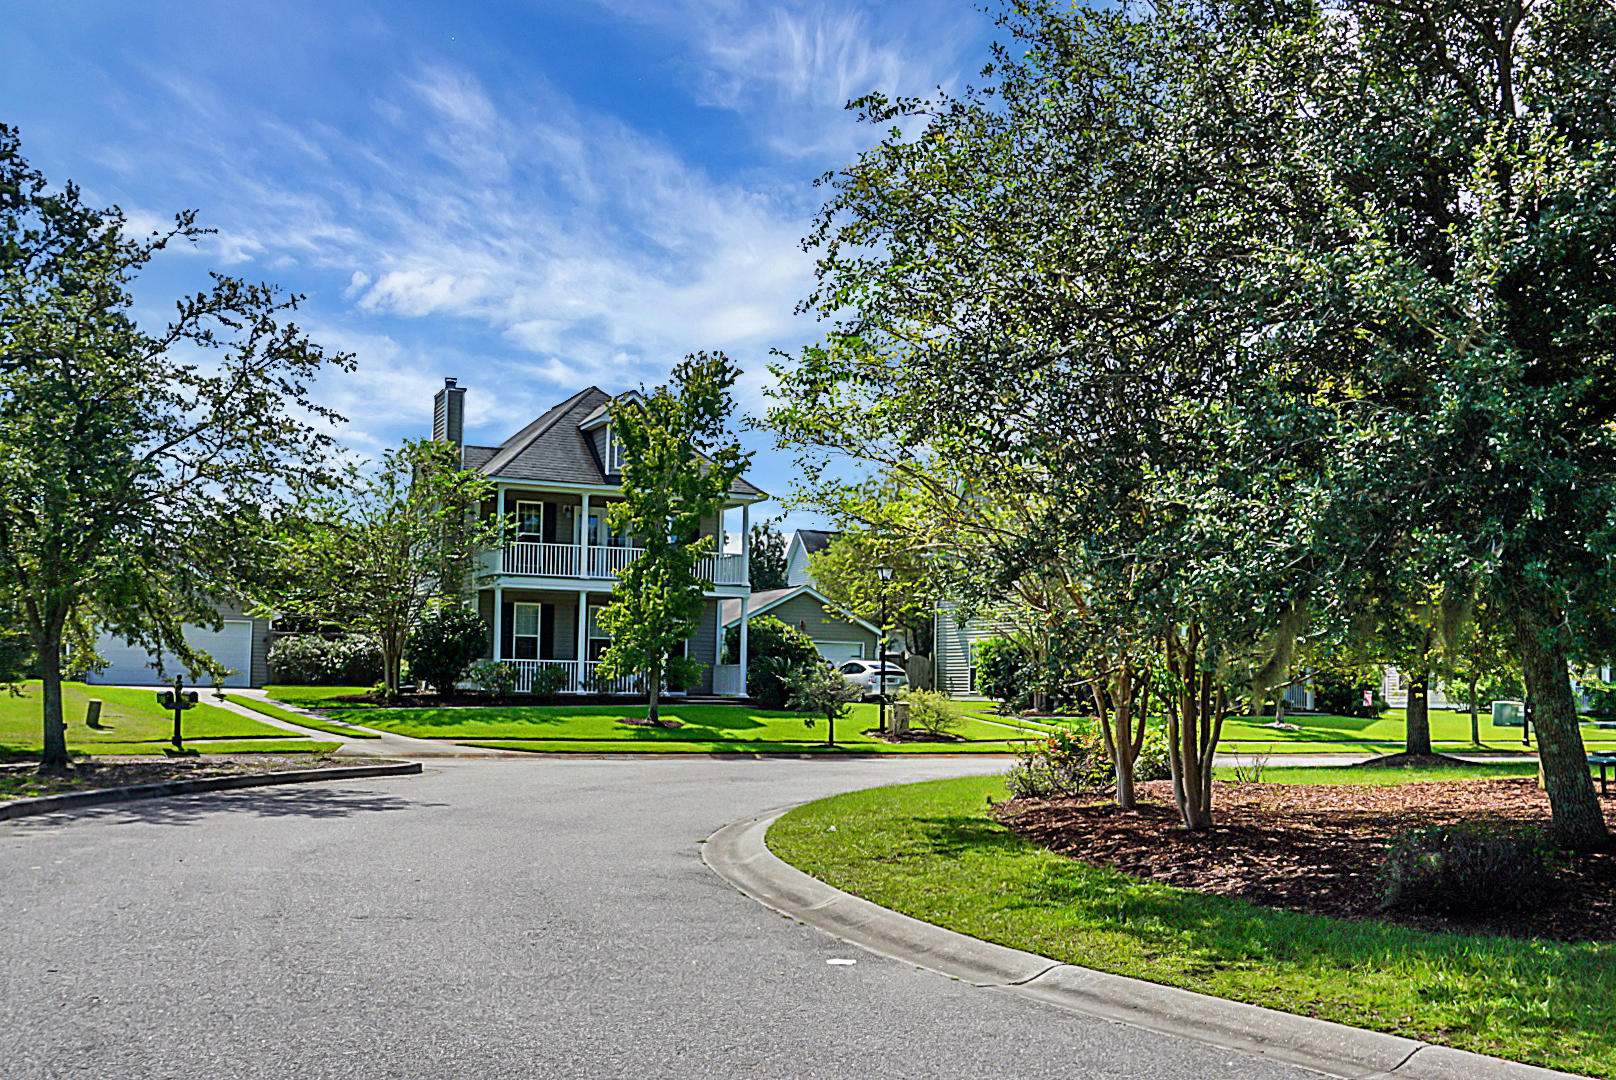 Heatherwoods Homes For Sale - 120 Full Moon, Ladson, SC - 0